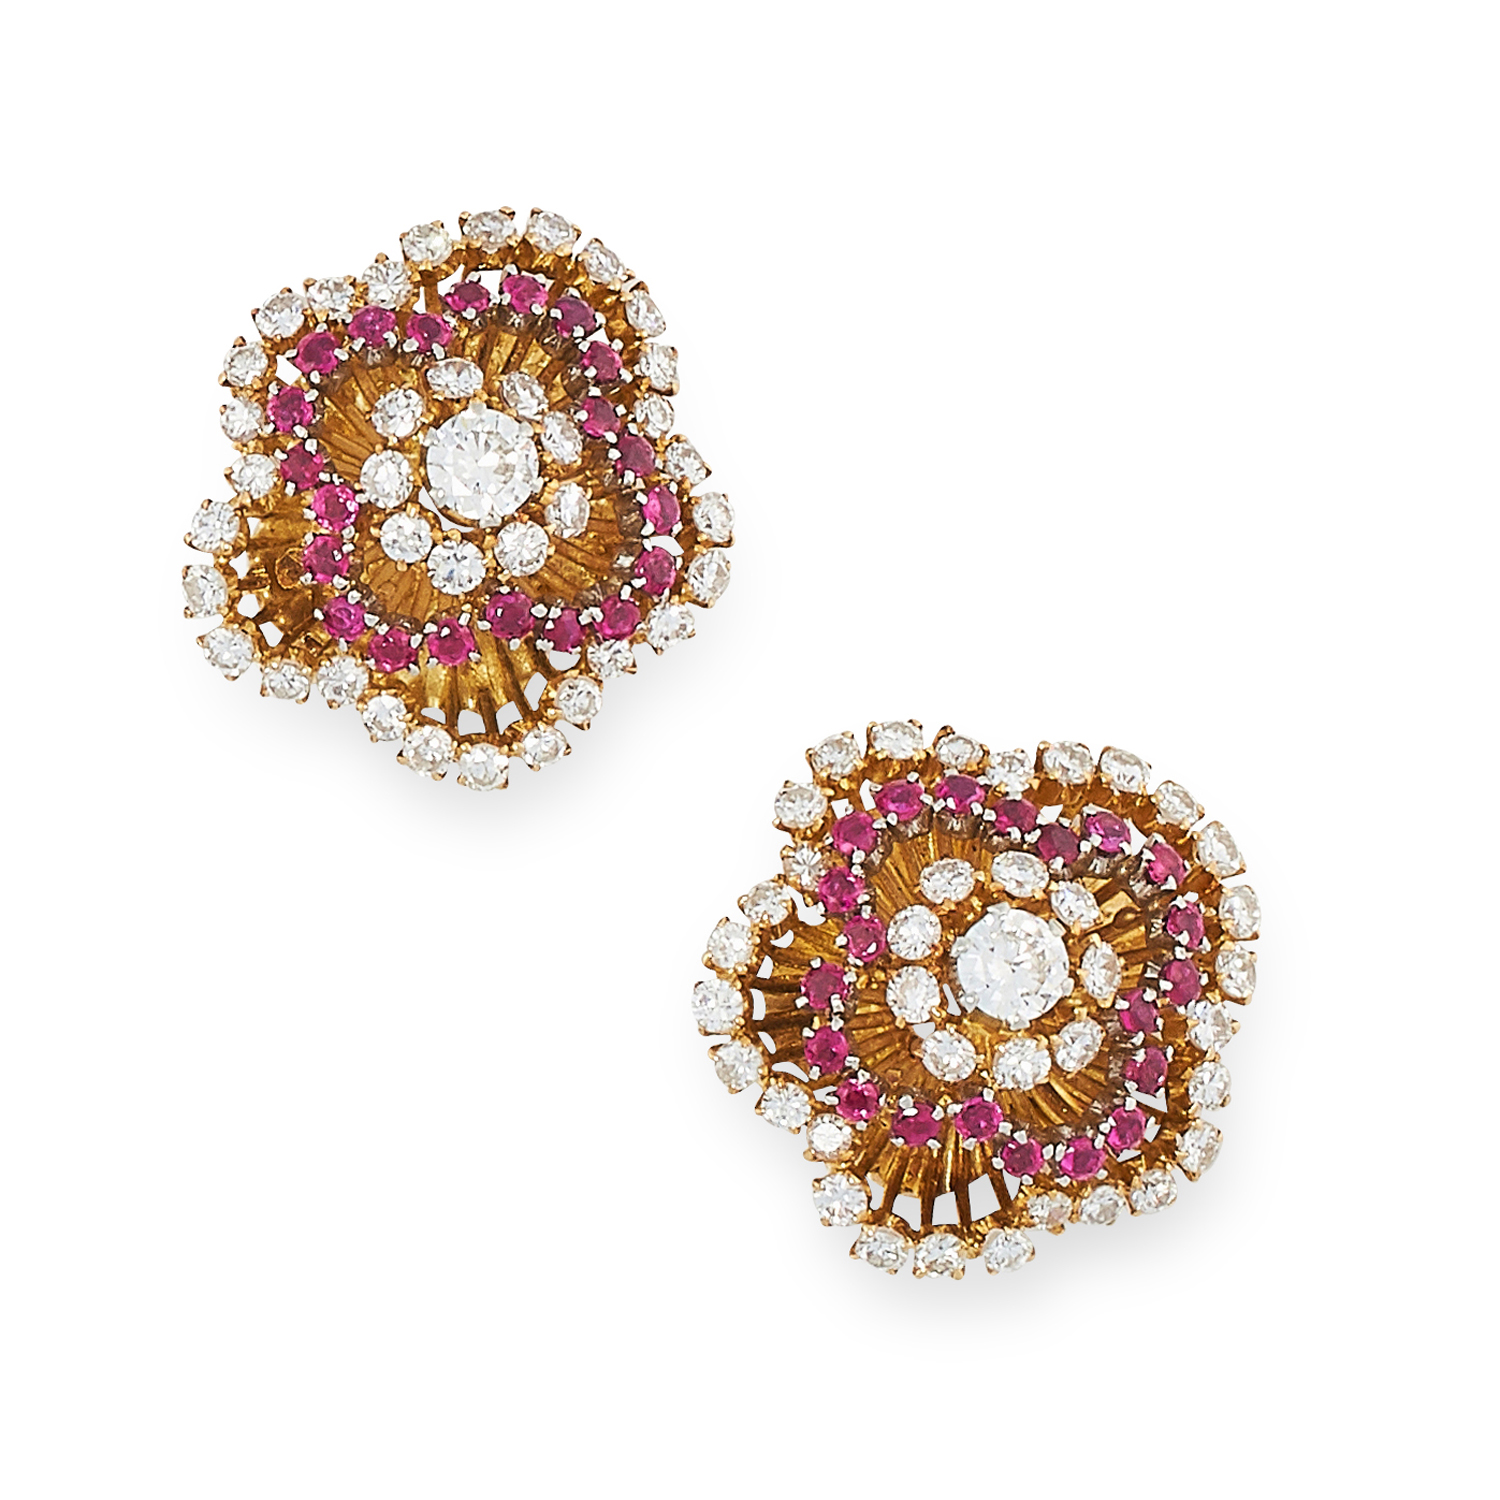 A PAIR OF RUBY AND DIAMOND CLIP EARRINGS, 1960s in high carat yellow gold, each designed as a floral - Image 2 of 2